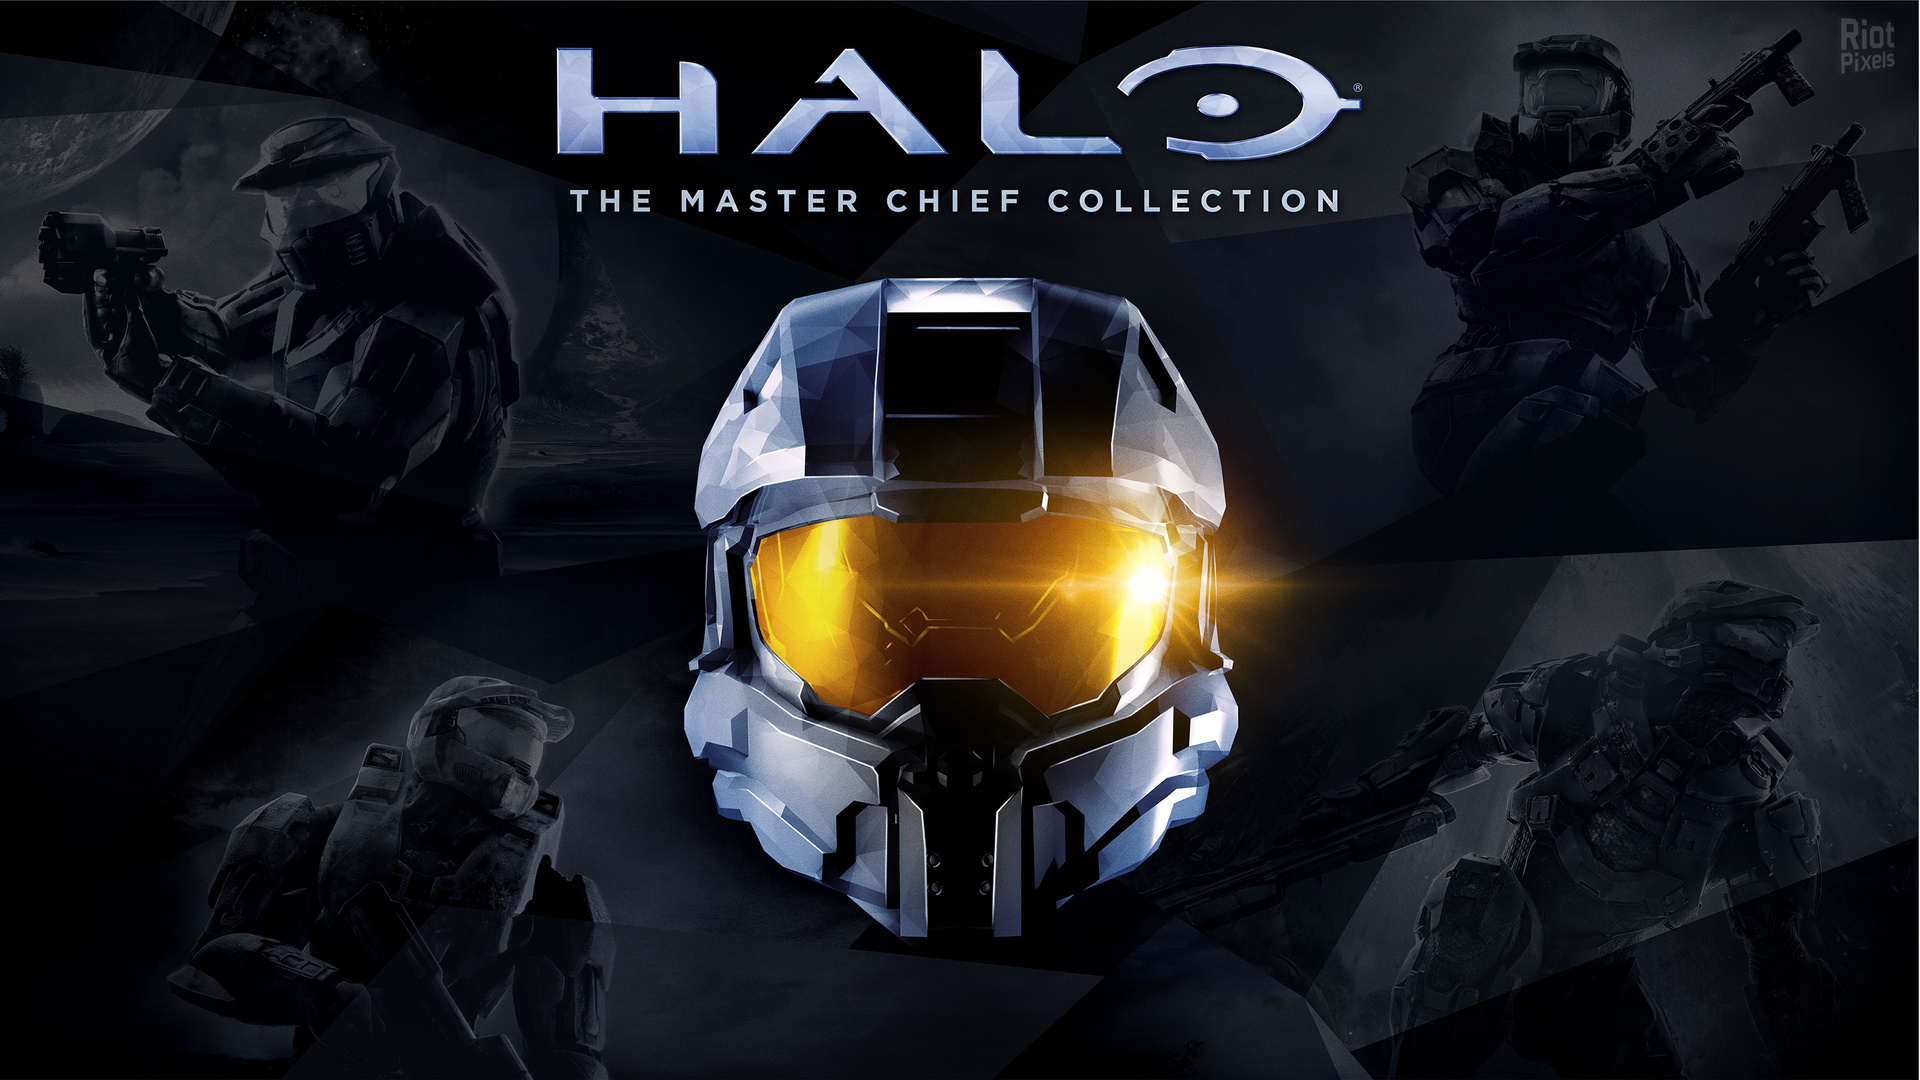 artwork.halo-the-master-chief-collection.1920x1080.2014-06-10.4.jpg